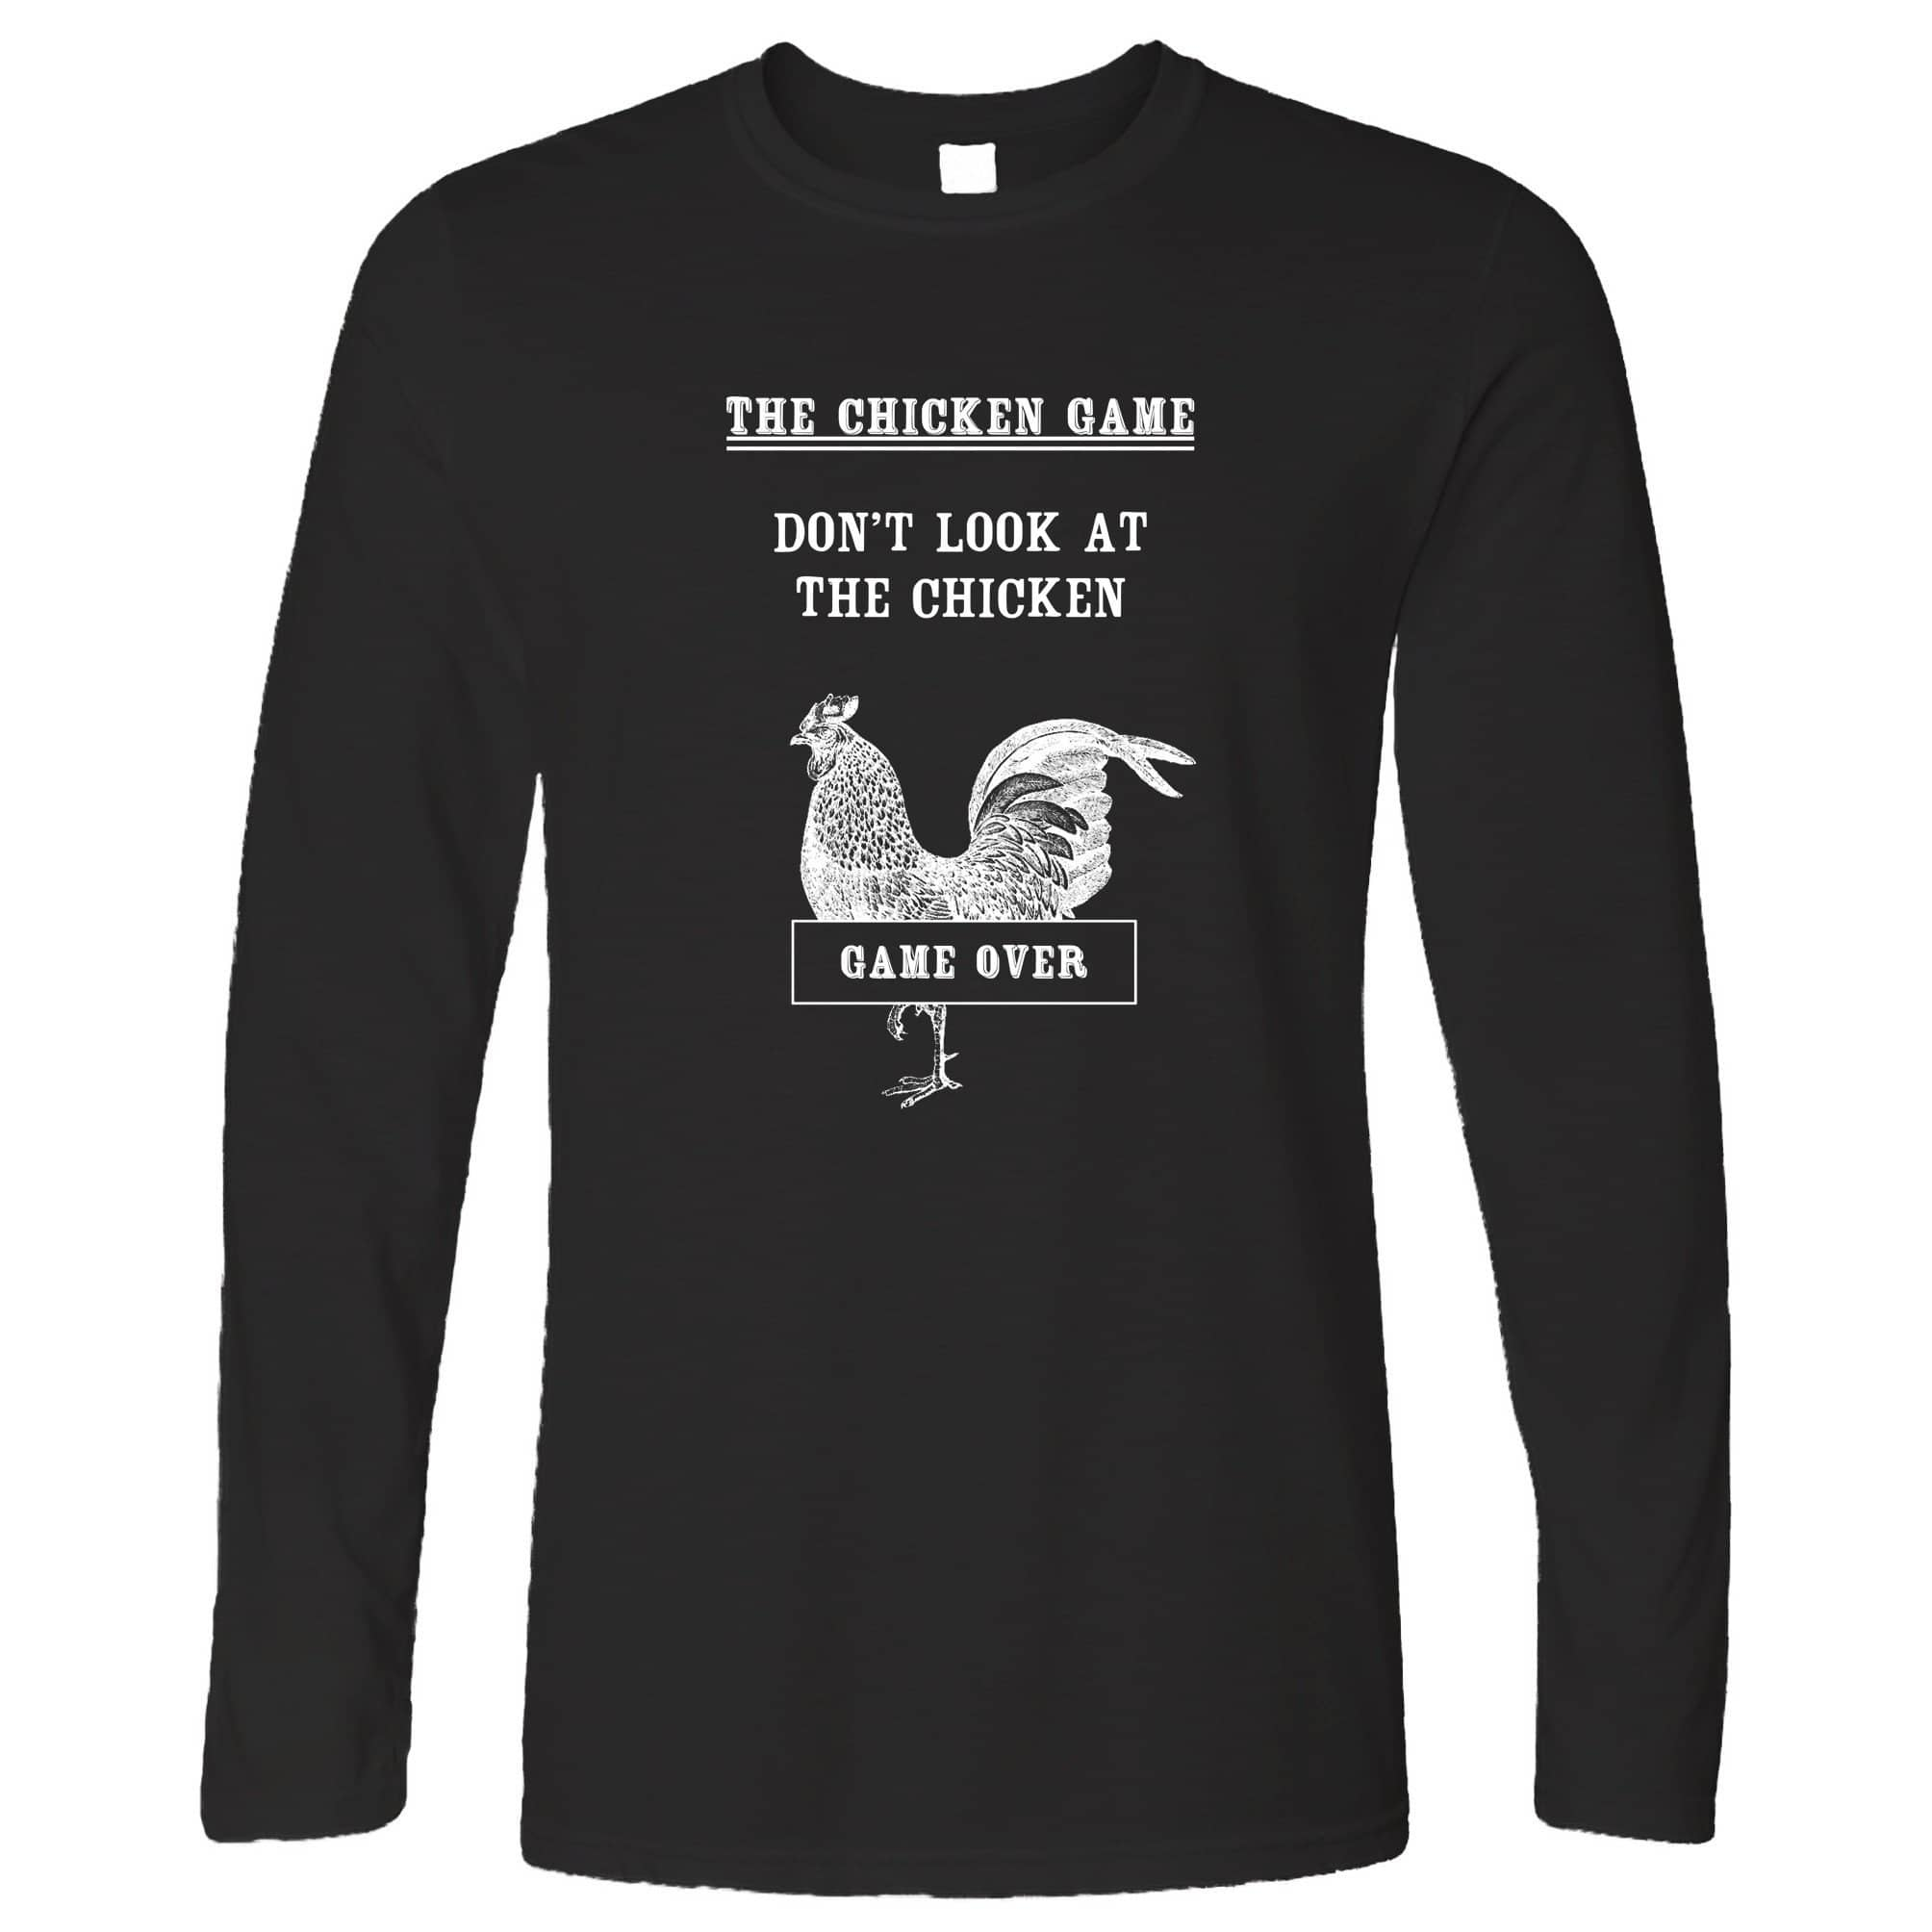 Novelty Long Sleeve Don't Look At The Chicken Game Joke T-Shirt